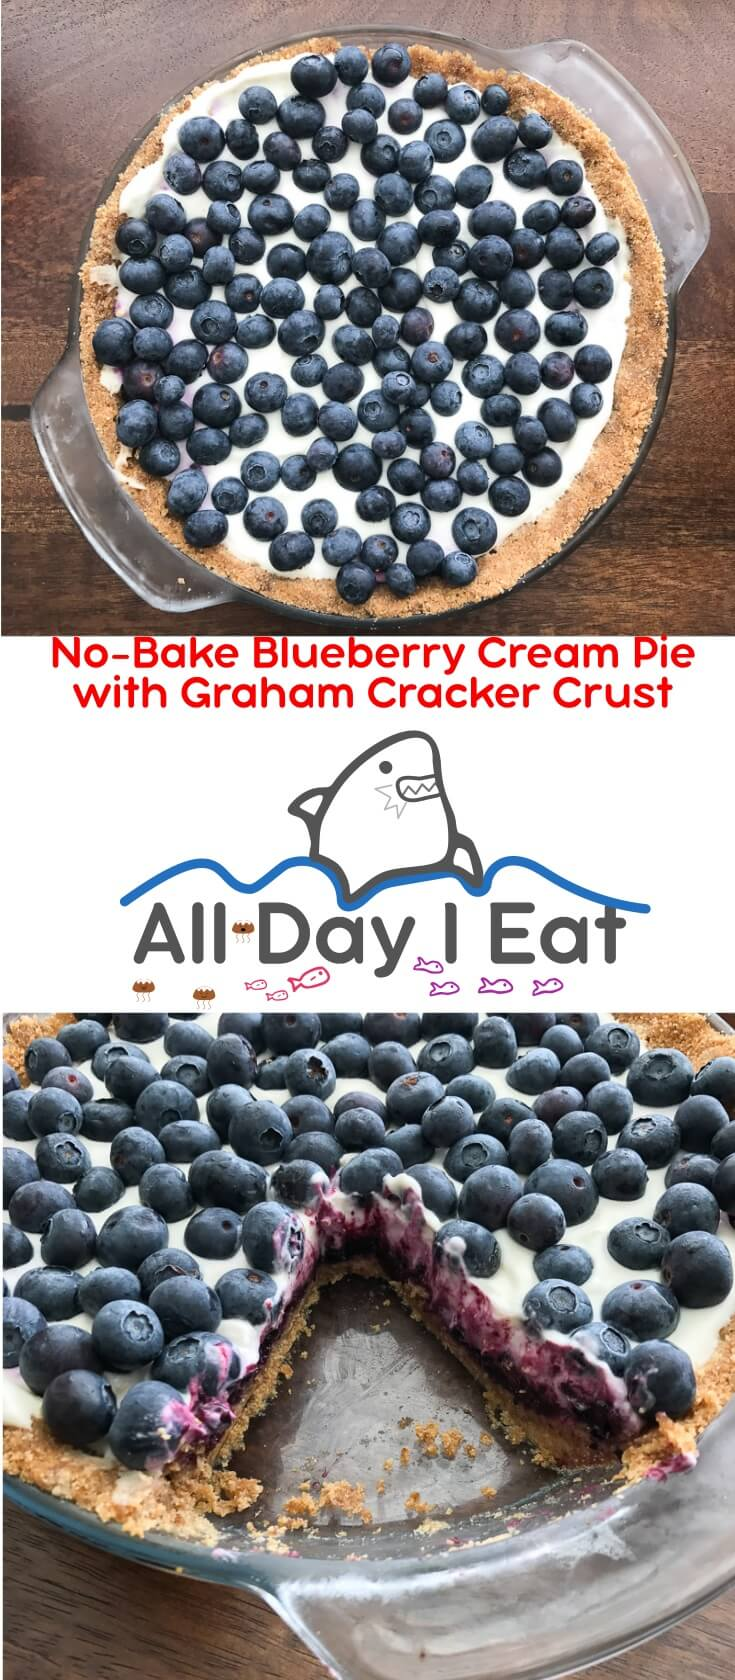 No Bake Blueberry Cream Pie with Graham Cracker Crust is a taste of summer you won't forget. Best served chilled, this pie filling is rich, creamy, and fruity with just the right amount of sweetness. The graham cracker crust is classic and one you can repurpose for other no bake desserts like my other favorite, cheesecake!